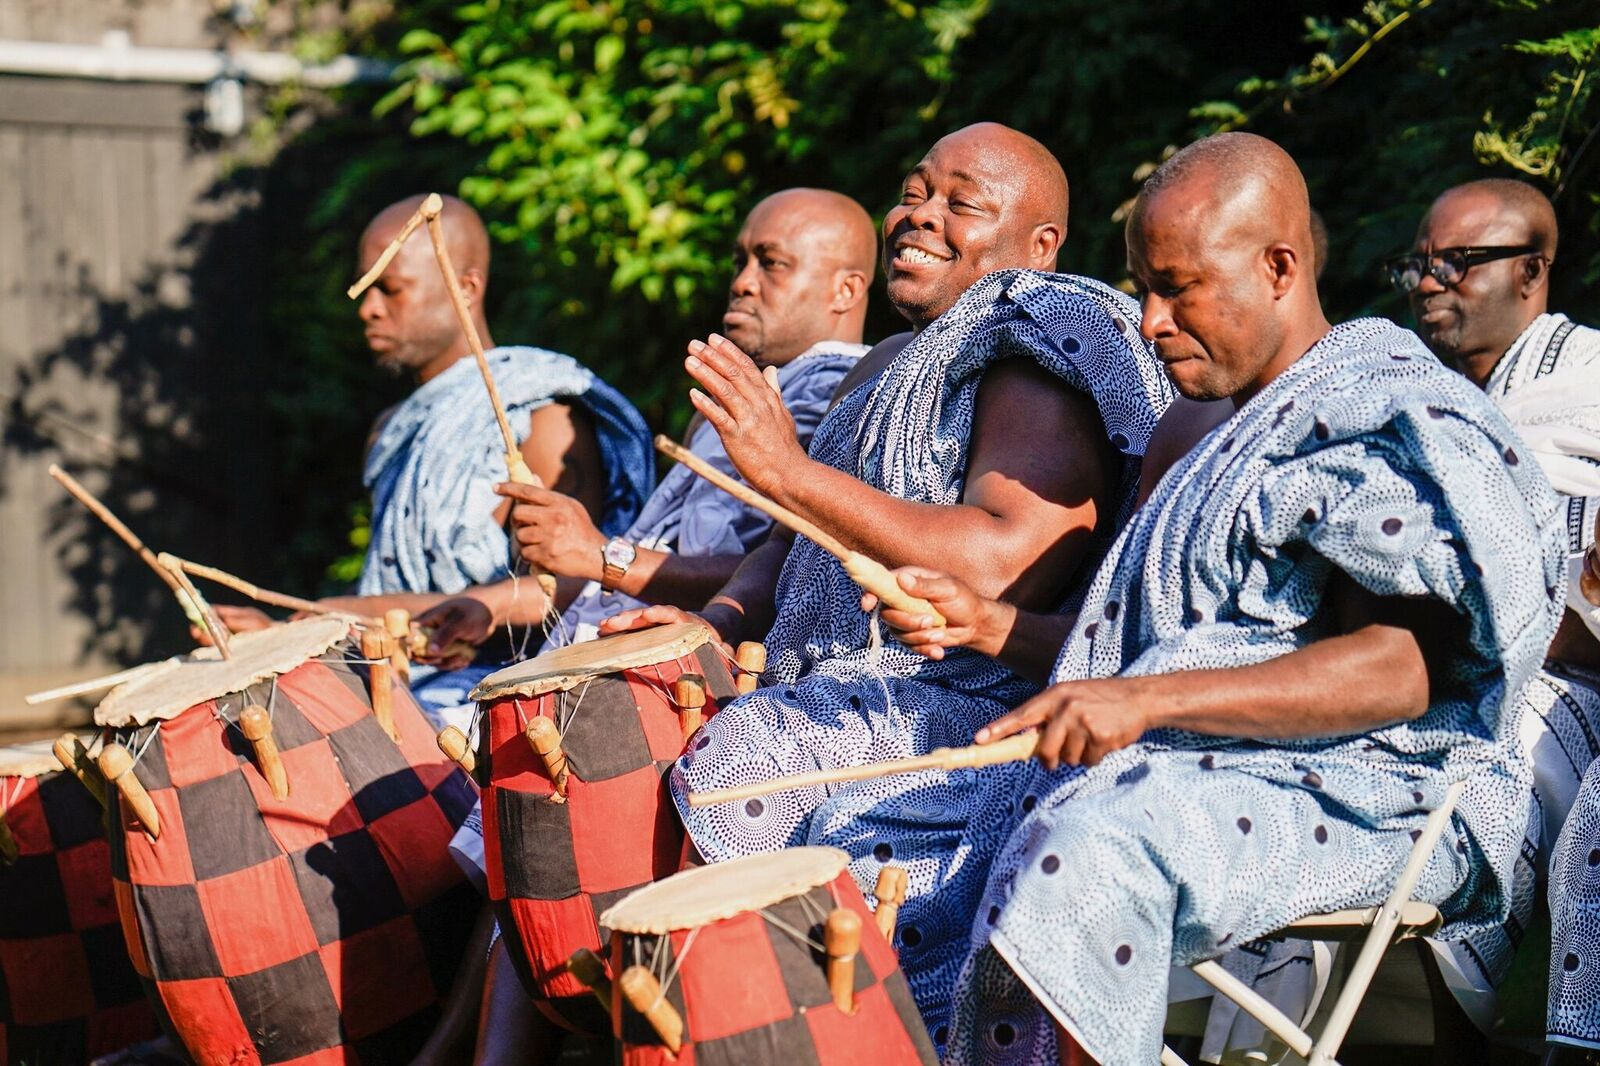 Music for this Ghanaian ceremony honored the heritage of the groom. Check out all of the details from this garden wedding we planned at Grounds for Sculpture!